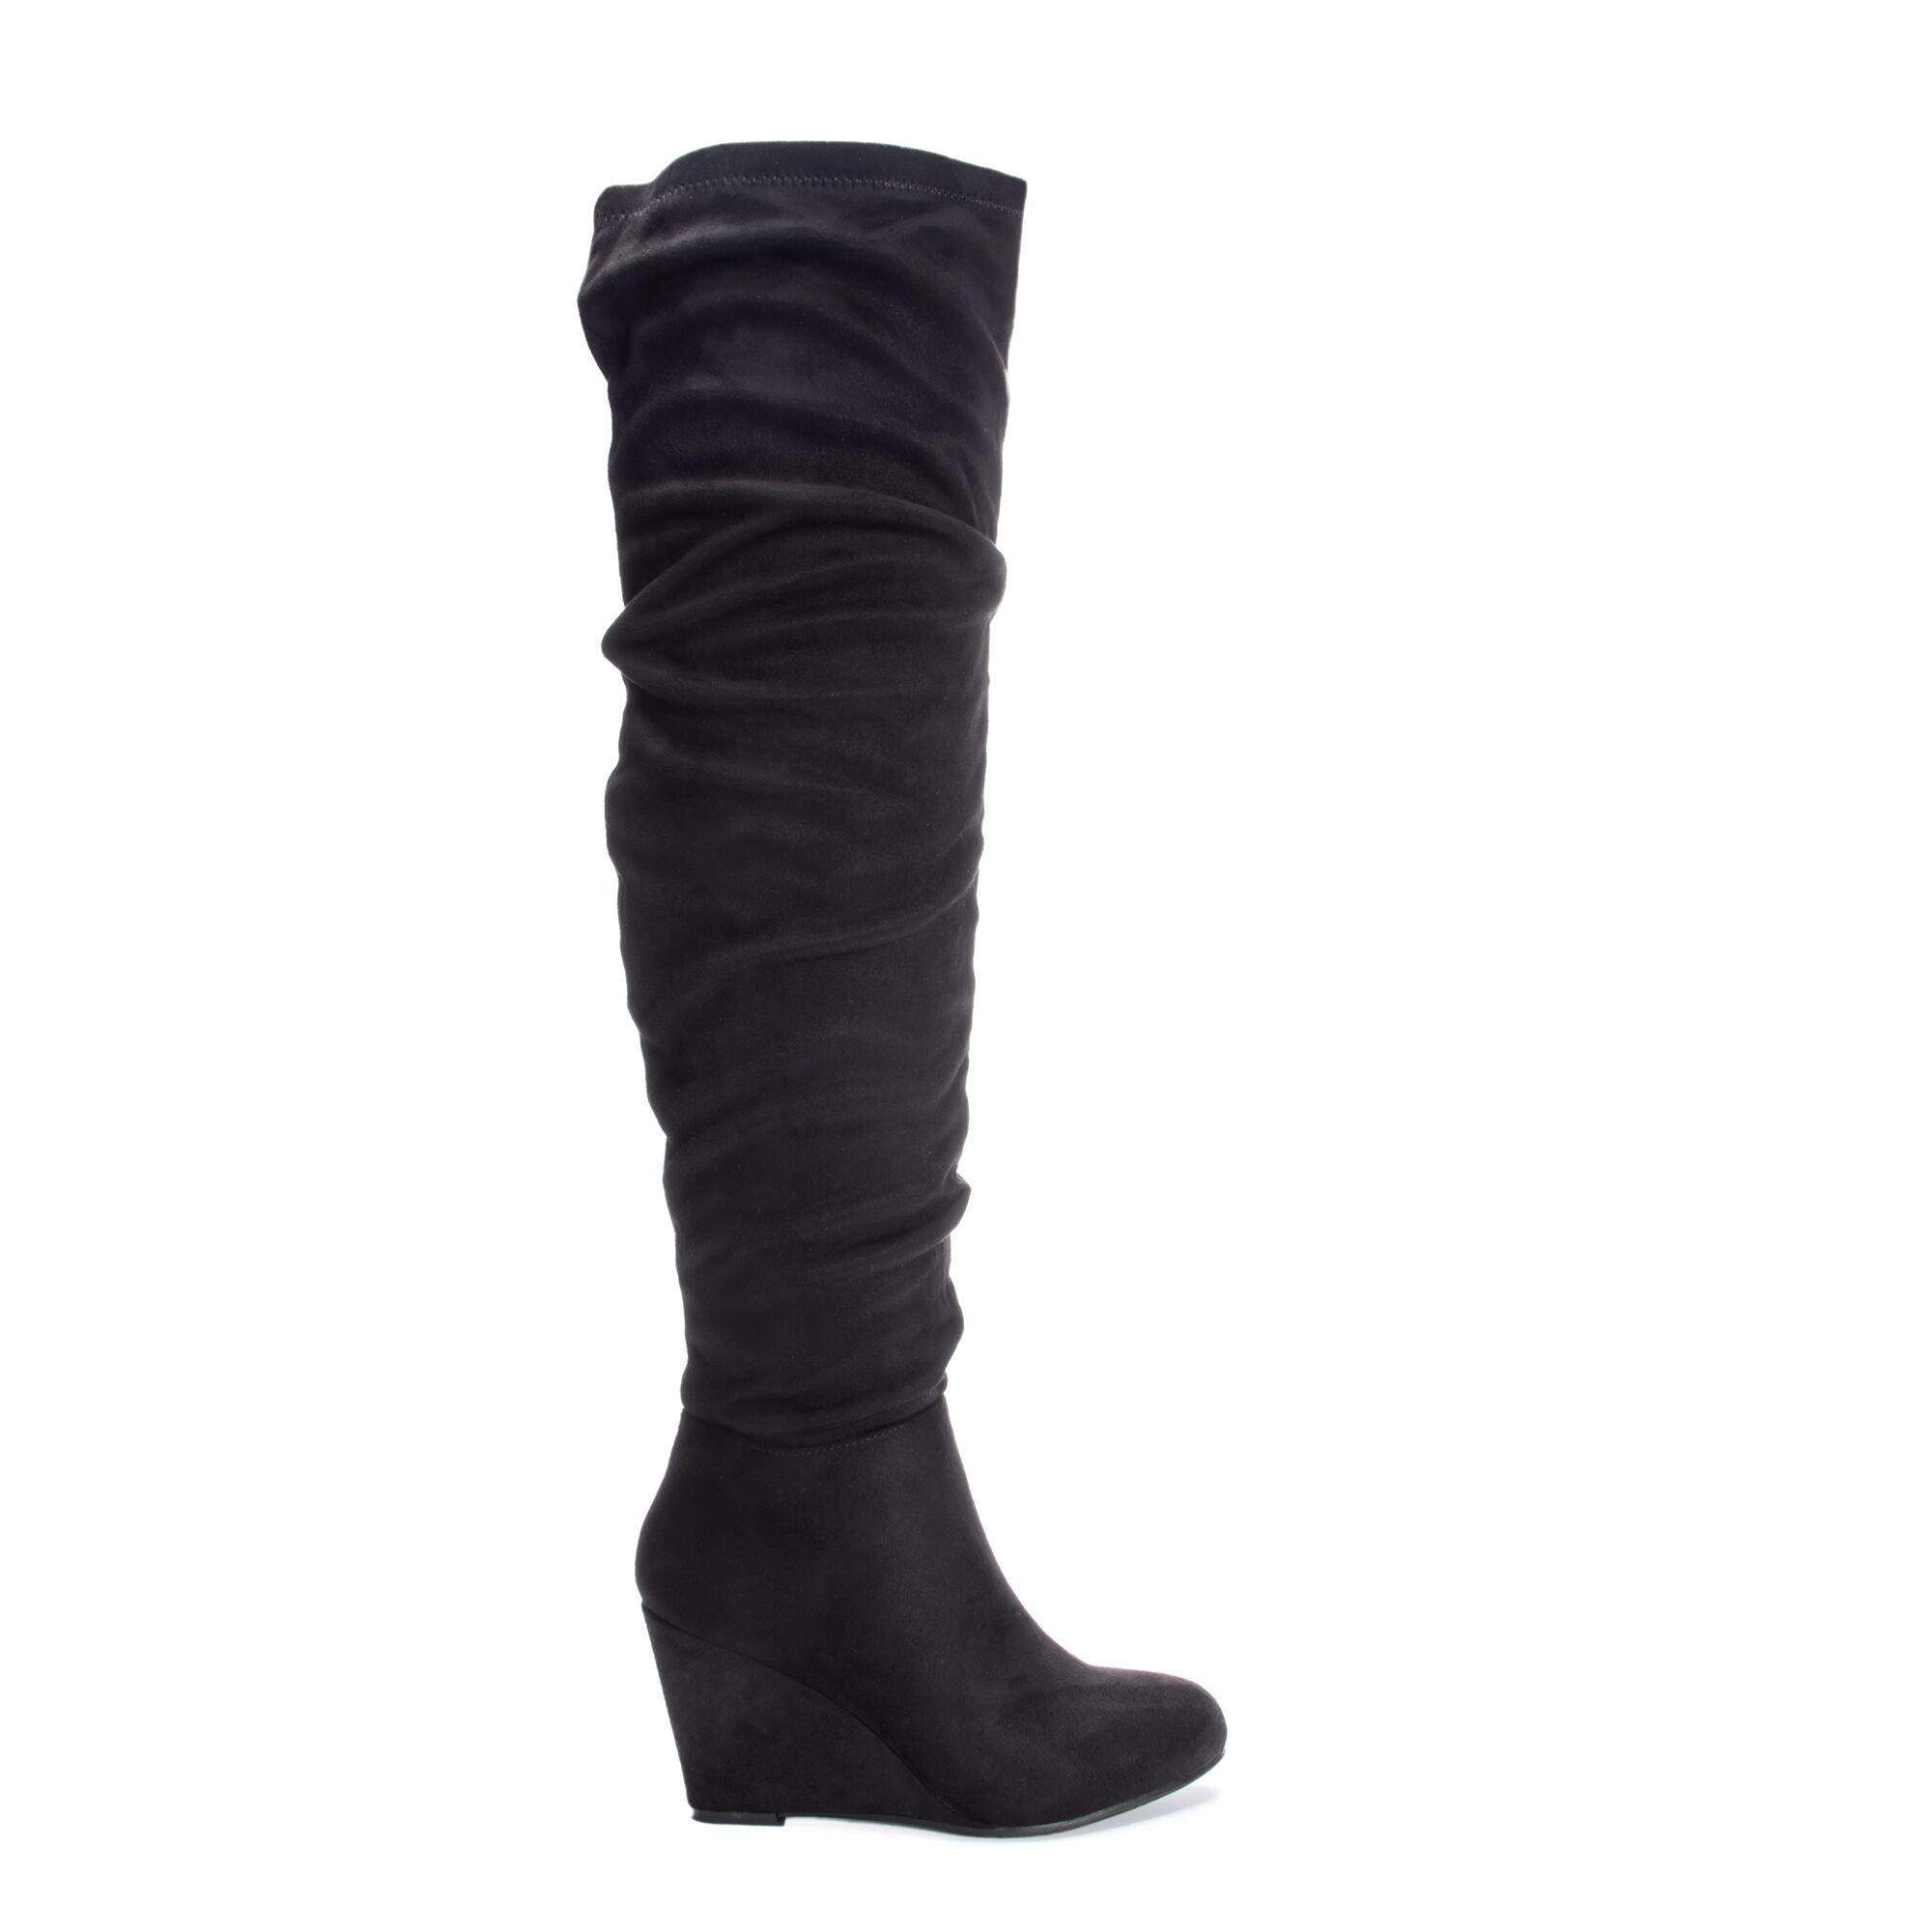 c179e0f02b7 Uma Suedette Over the Knee Slouchy Wedge Boots